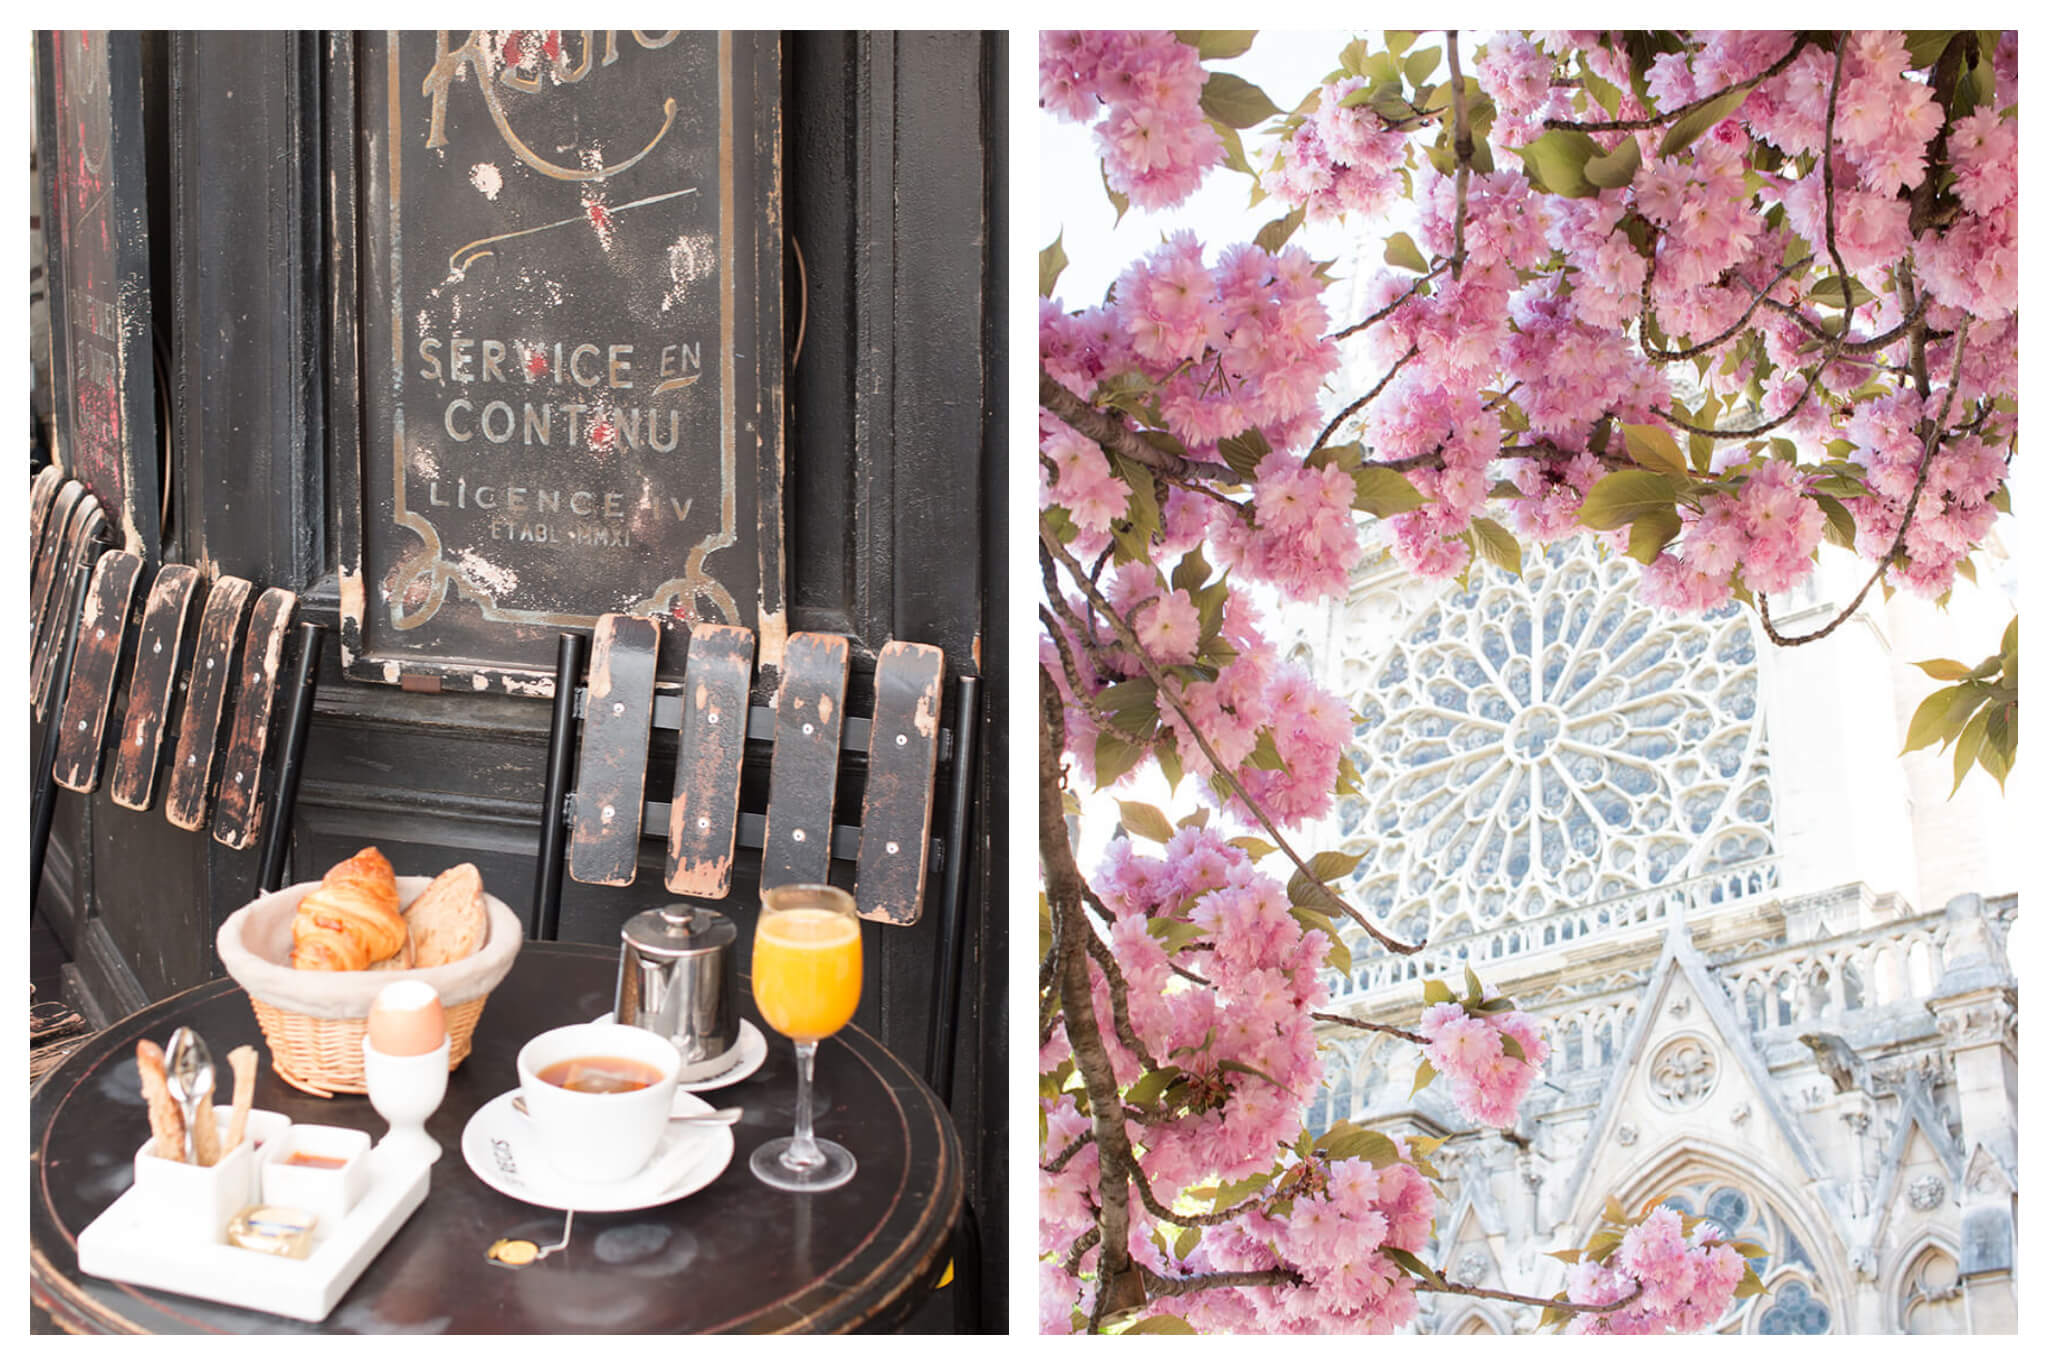 On left: A french breakfast on the terrace of a local café consists of warm, flakey croissants in a wicker basket; piping hot tea; freshly-pressed orange juice; and assorted jams. On right: The stained-glass facade of Notre Dame is framed by the iconic pink cherry blossoms that bloom in the adjacent square.